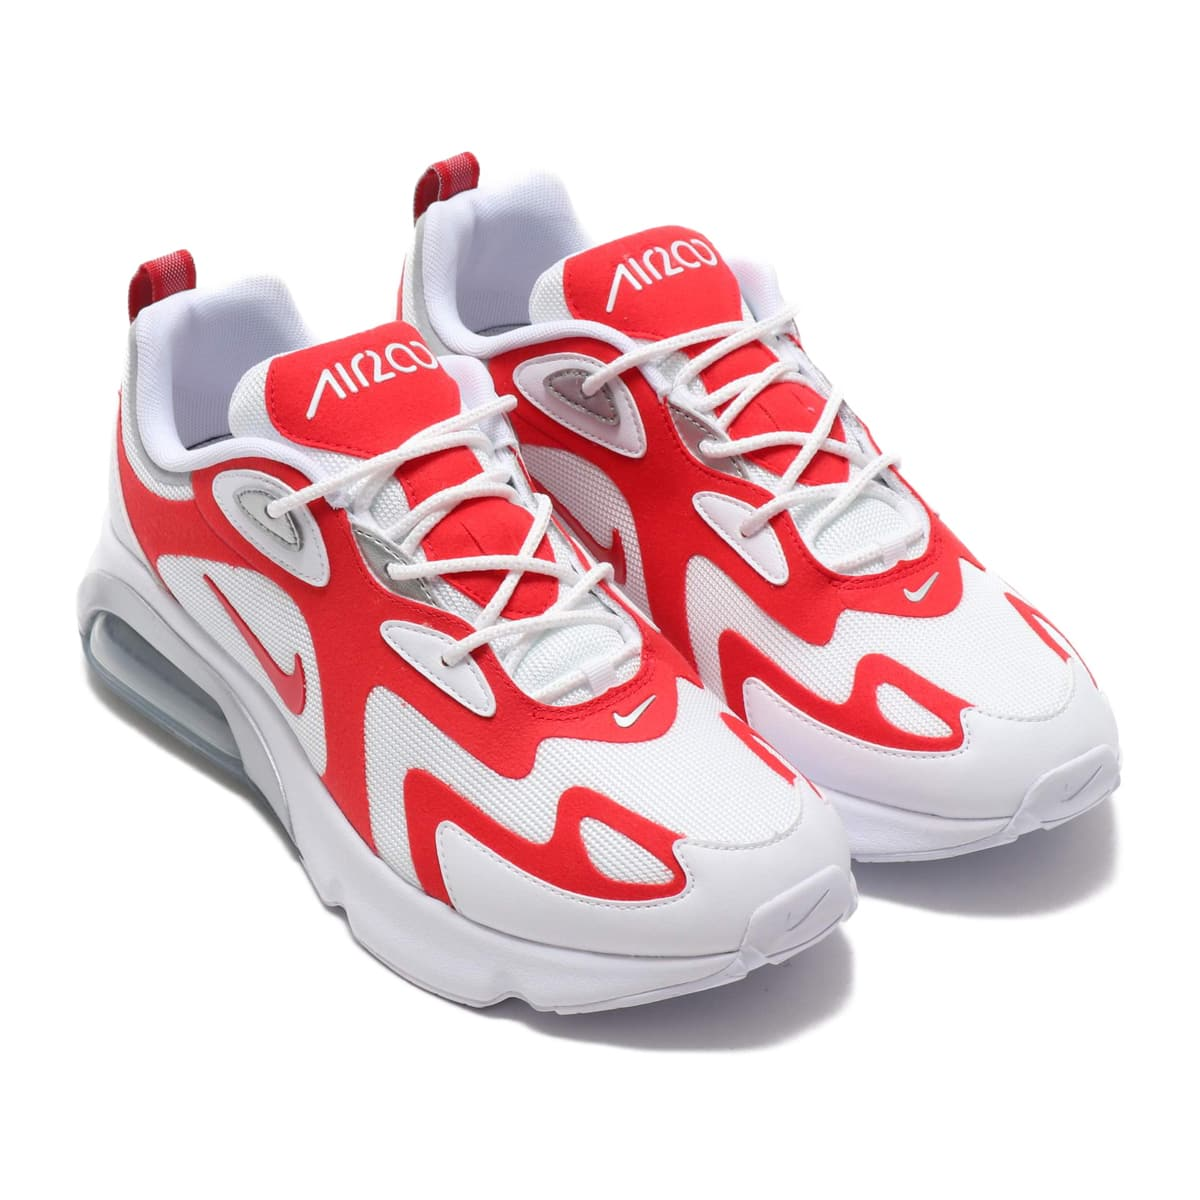 NIKE AIR MAX 200 WHITE/UNIVERSITY RED-METALLIC SILVER 19FA-S_photo_large